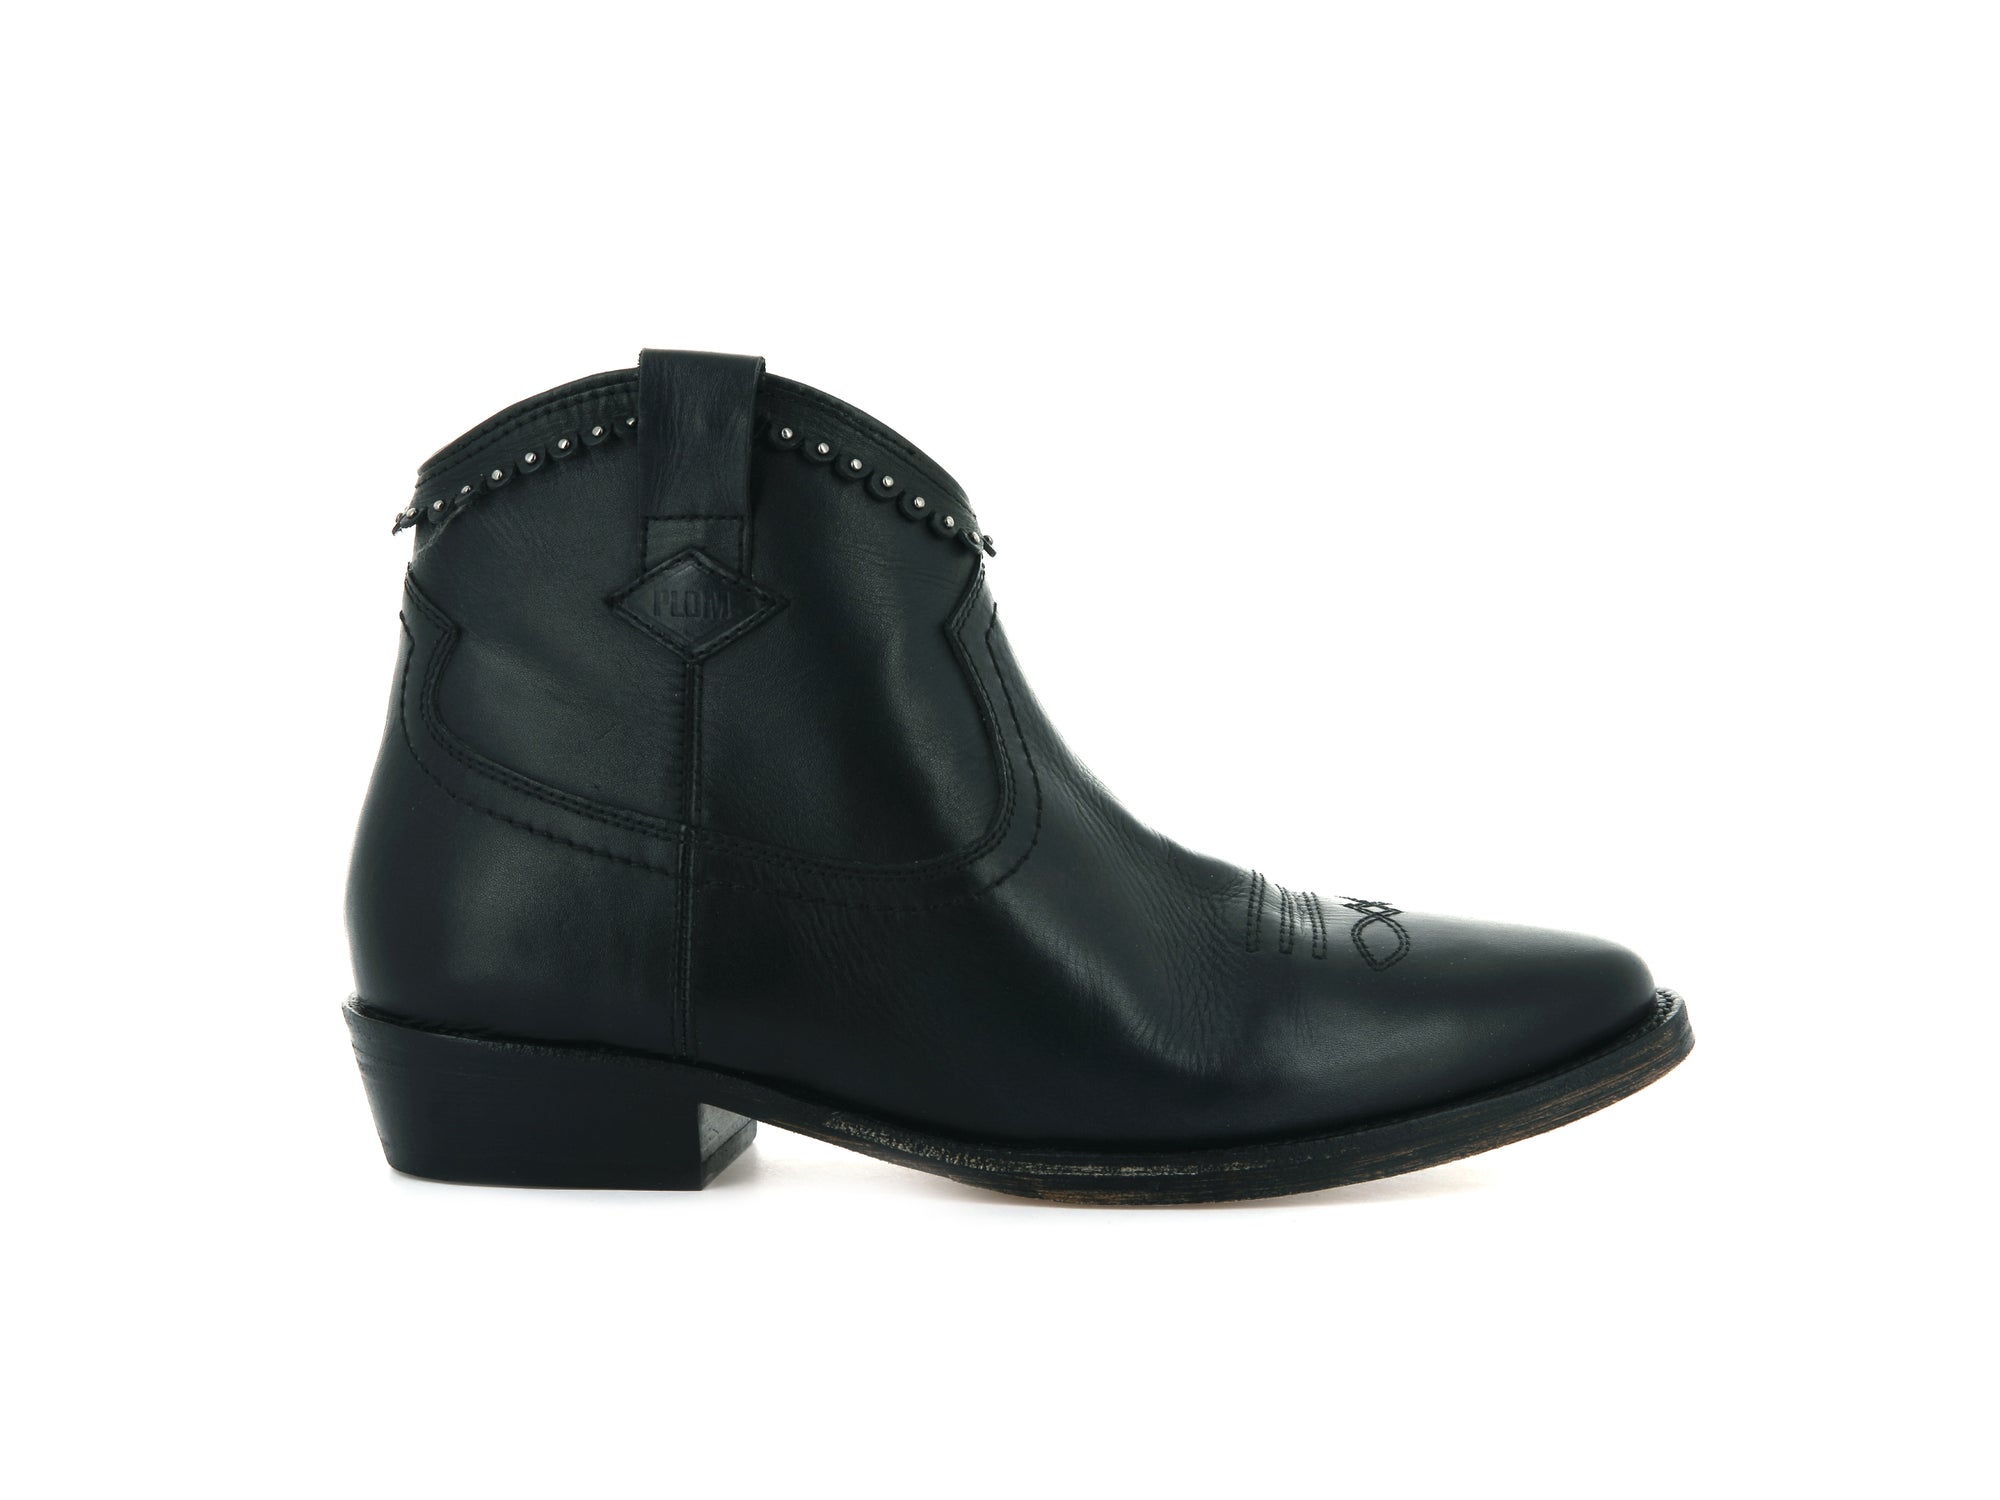 76324_315 | Bottines femme WALKYRIE THD | BLACK